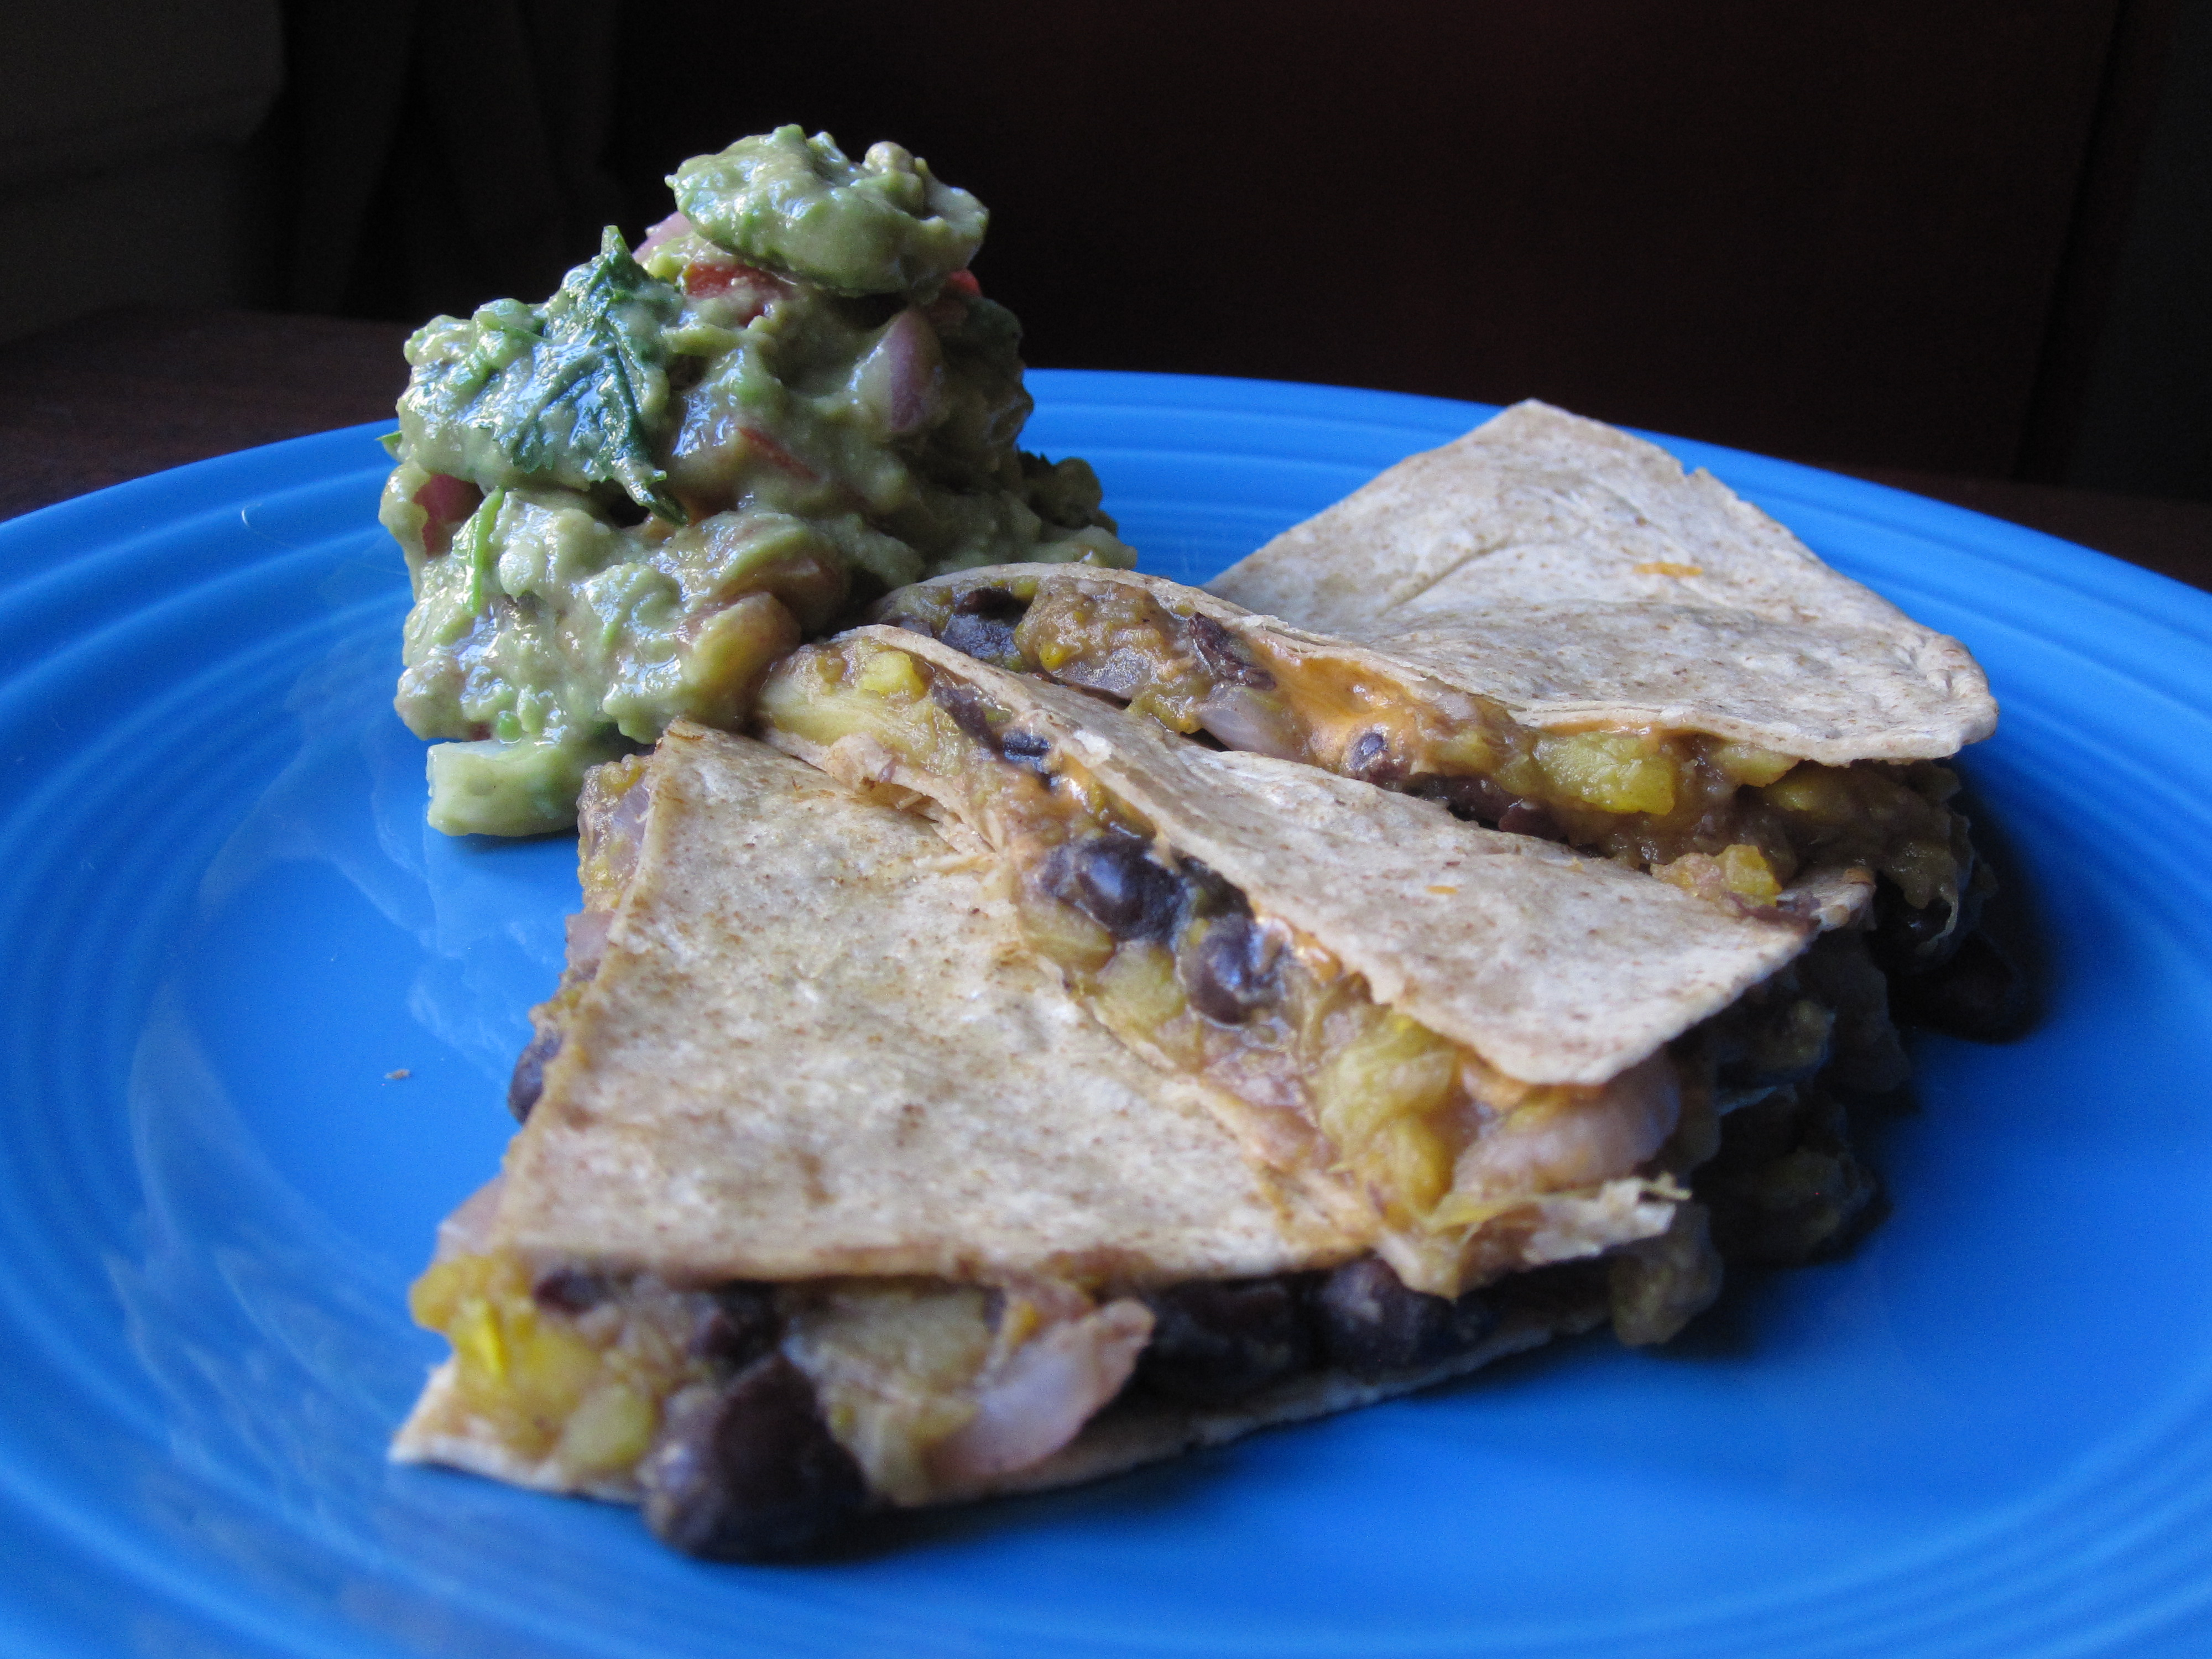 Squash and Black Bean Quesadillas with Guacamole